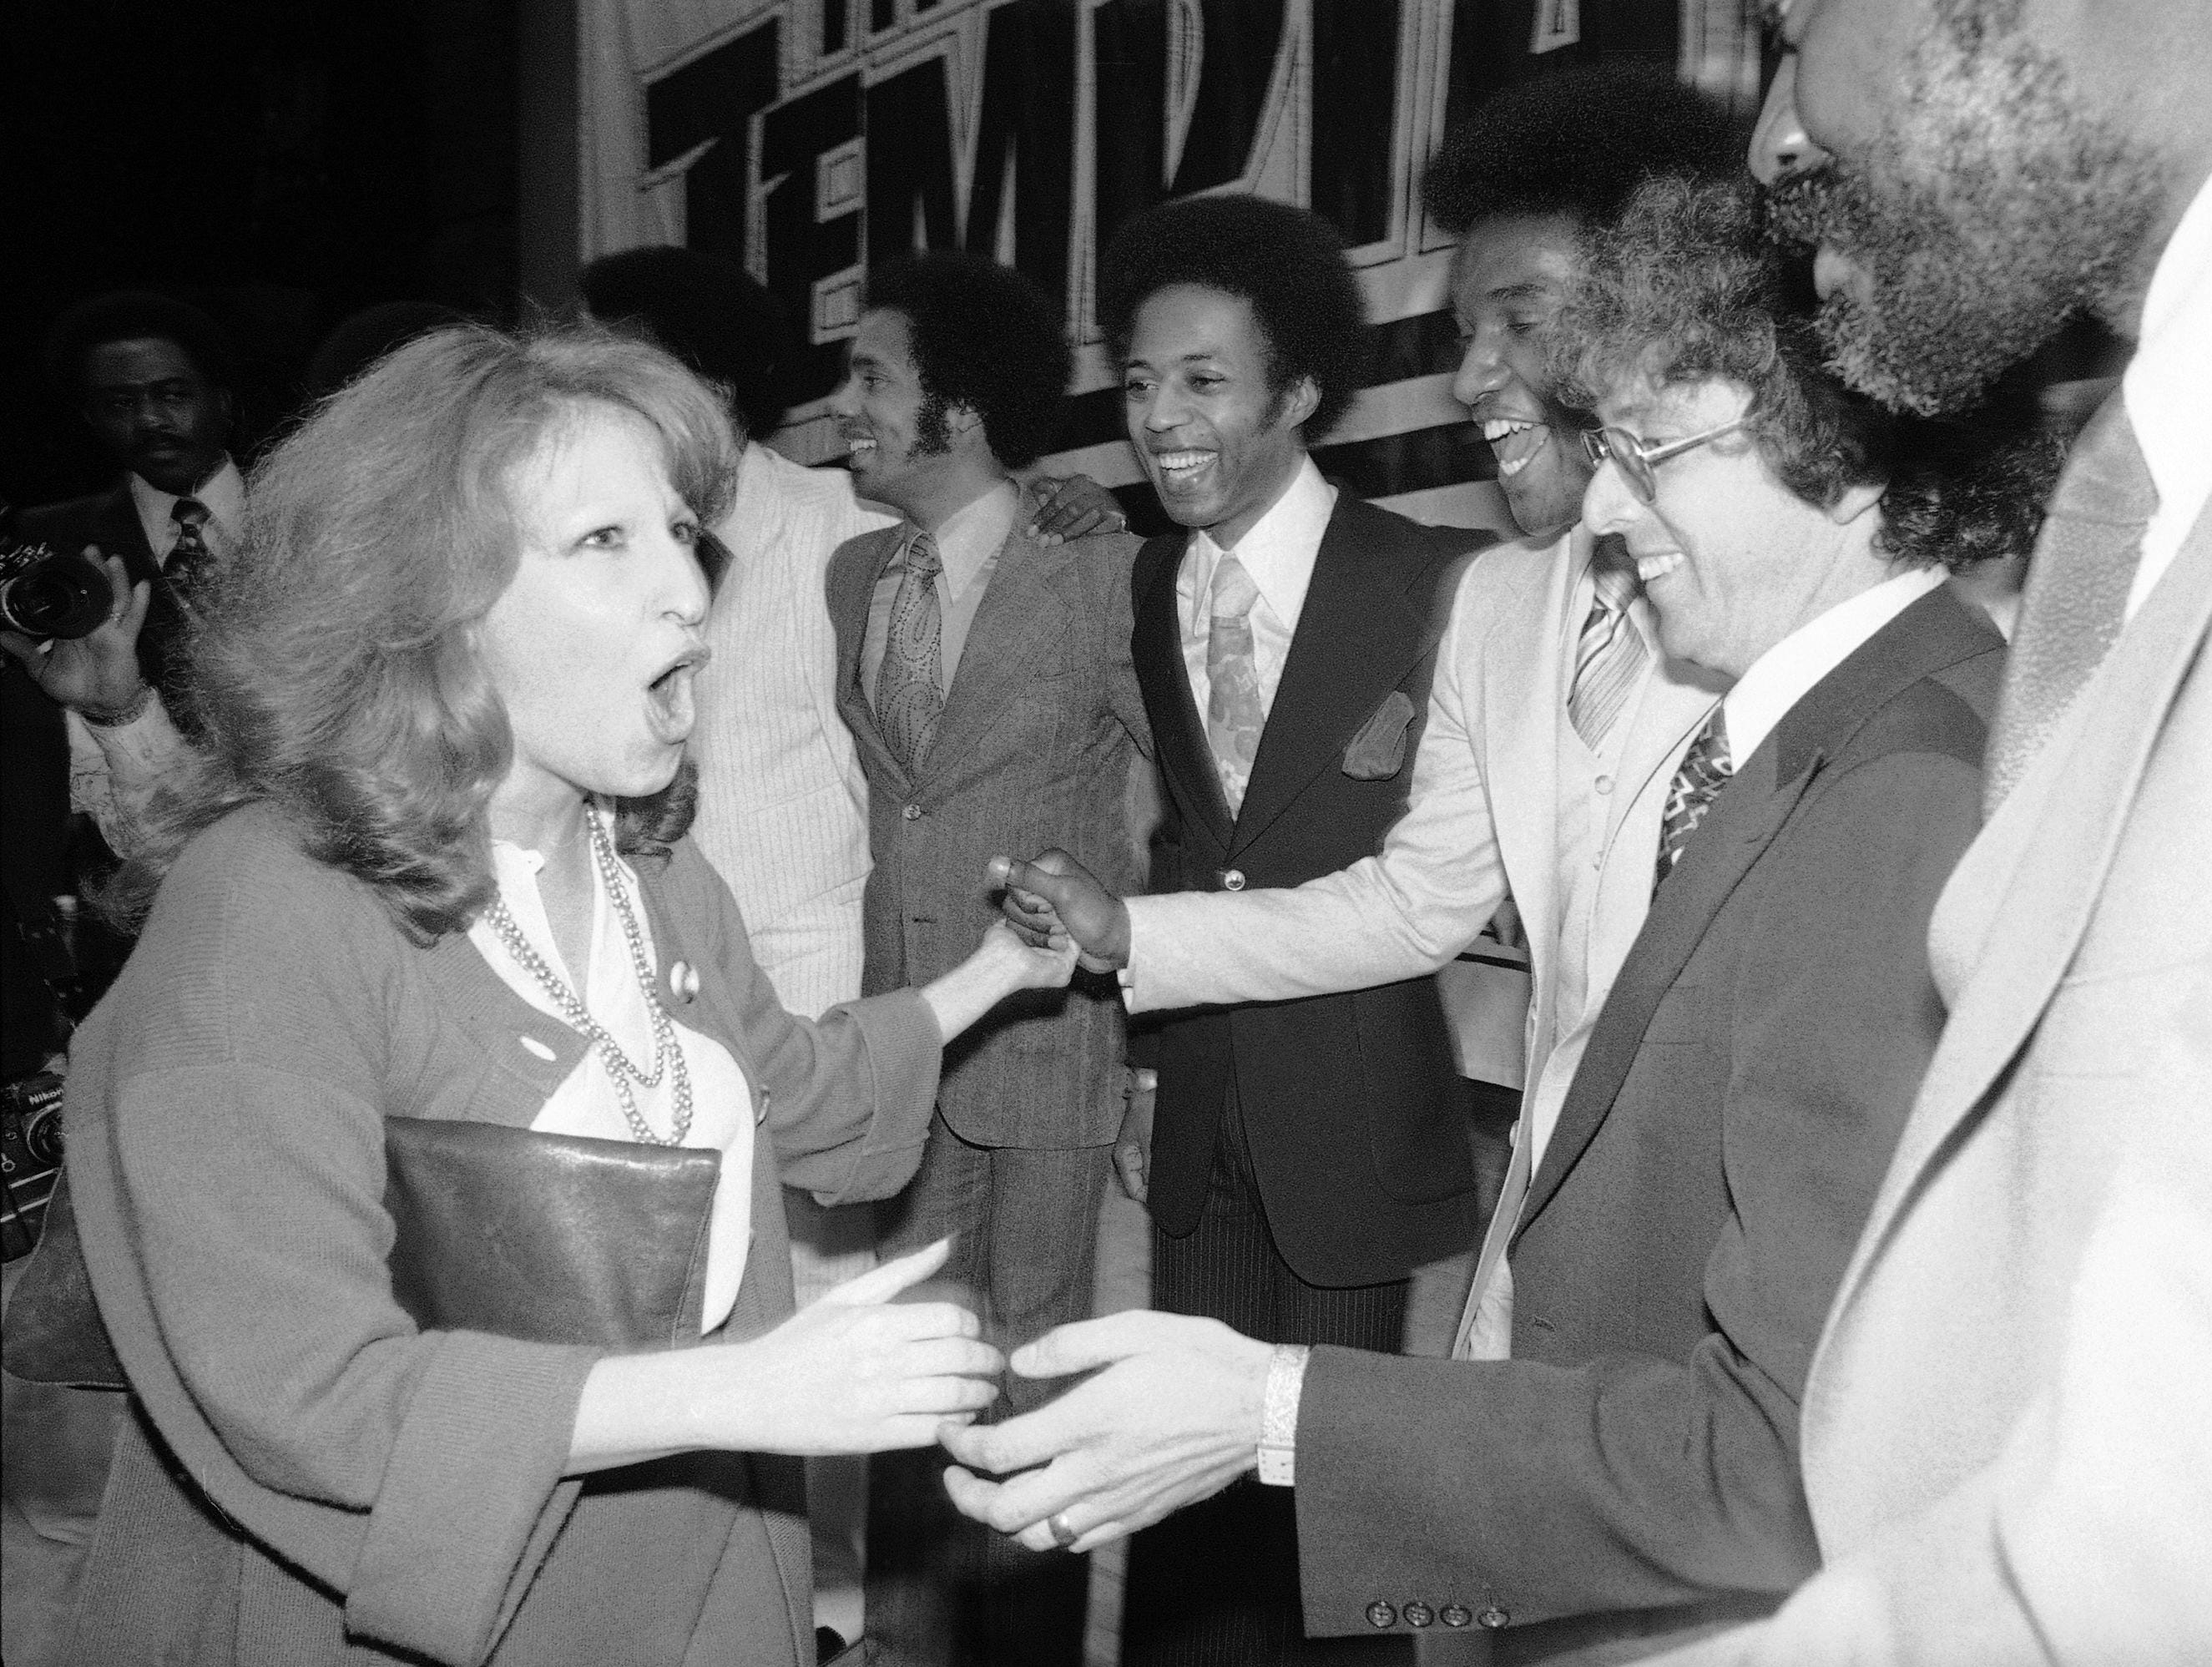 Bette Midler, left, greets members of the soul group, the Temptations and other guests at a party on May 9, 1977.